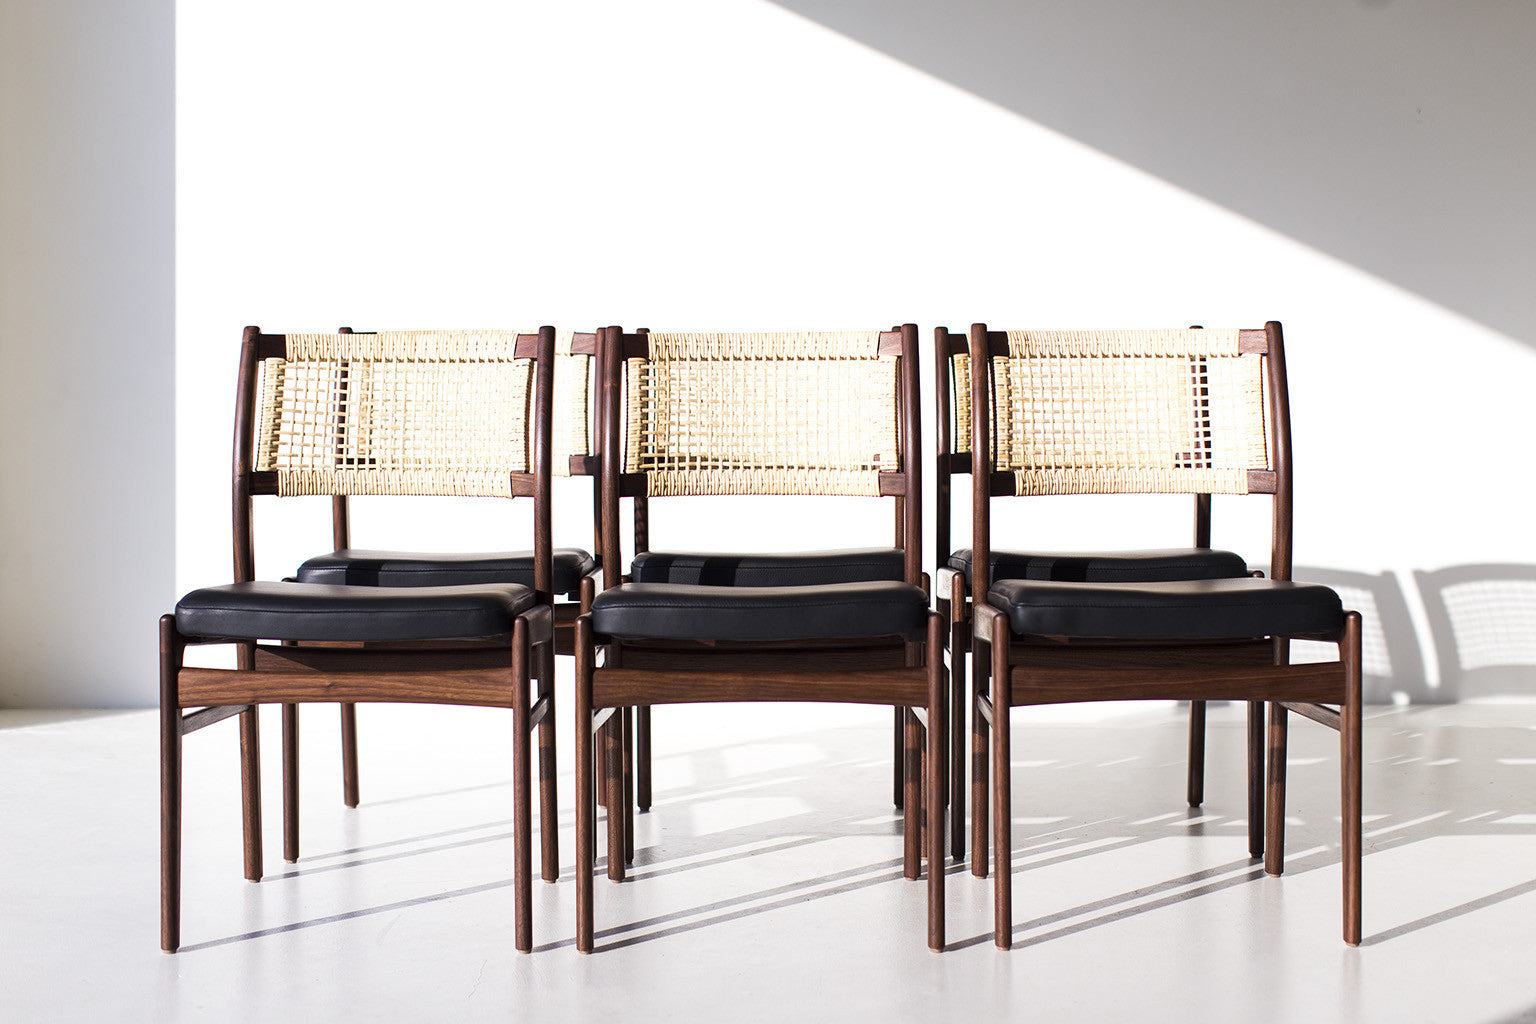 sylve-stenquist-dining-chairs-tribute-furniture-T-1002-12